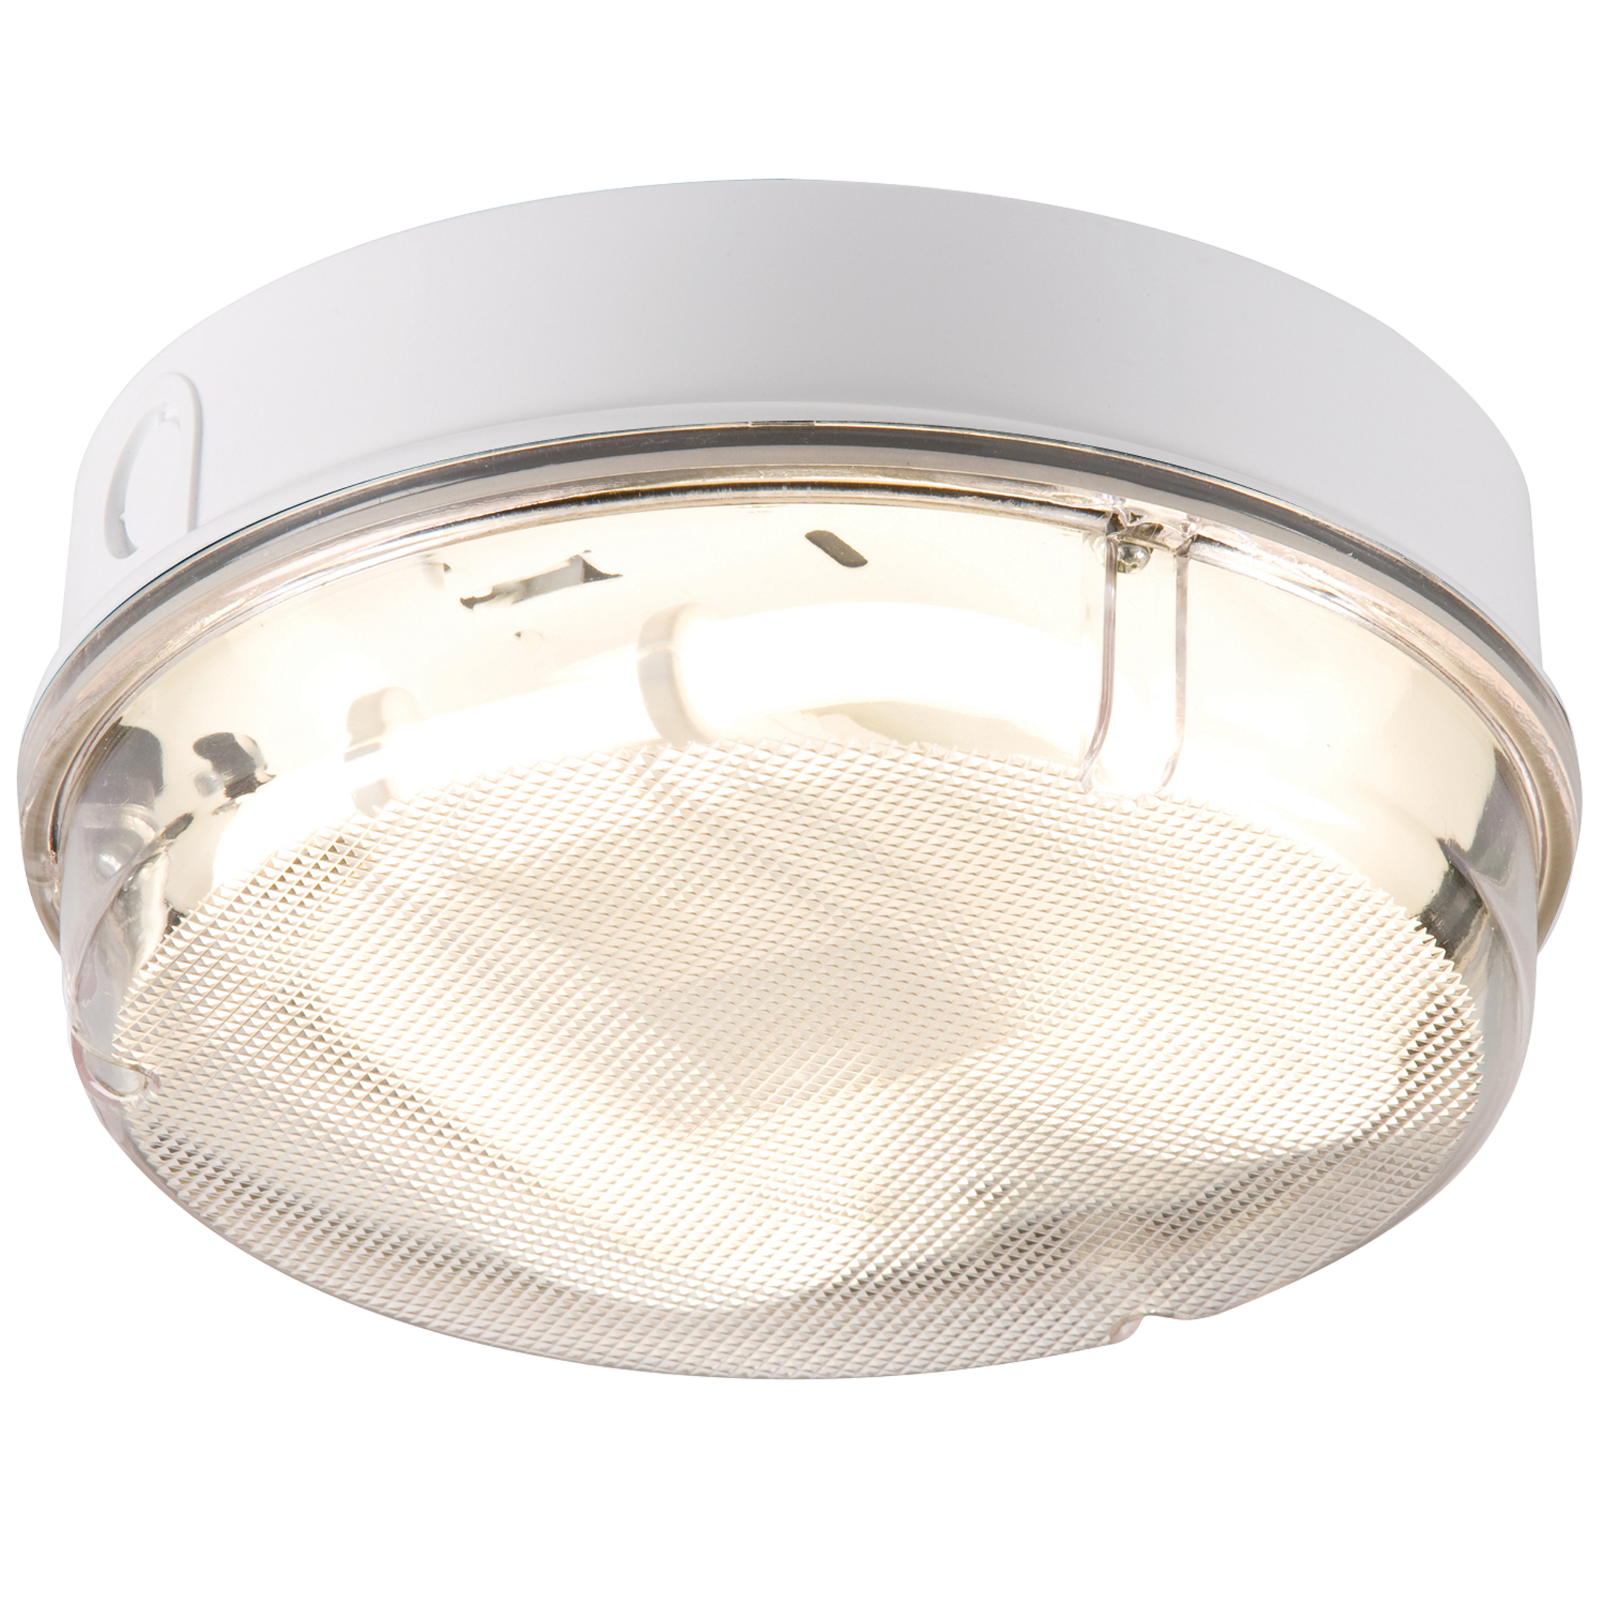 IP65 28W HF Round Emergency Bulkhead with Prismatic Diffuser and White Base